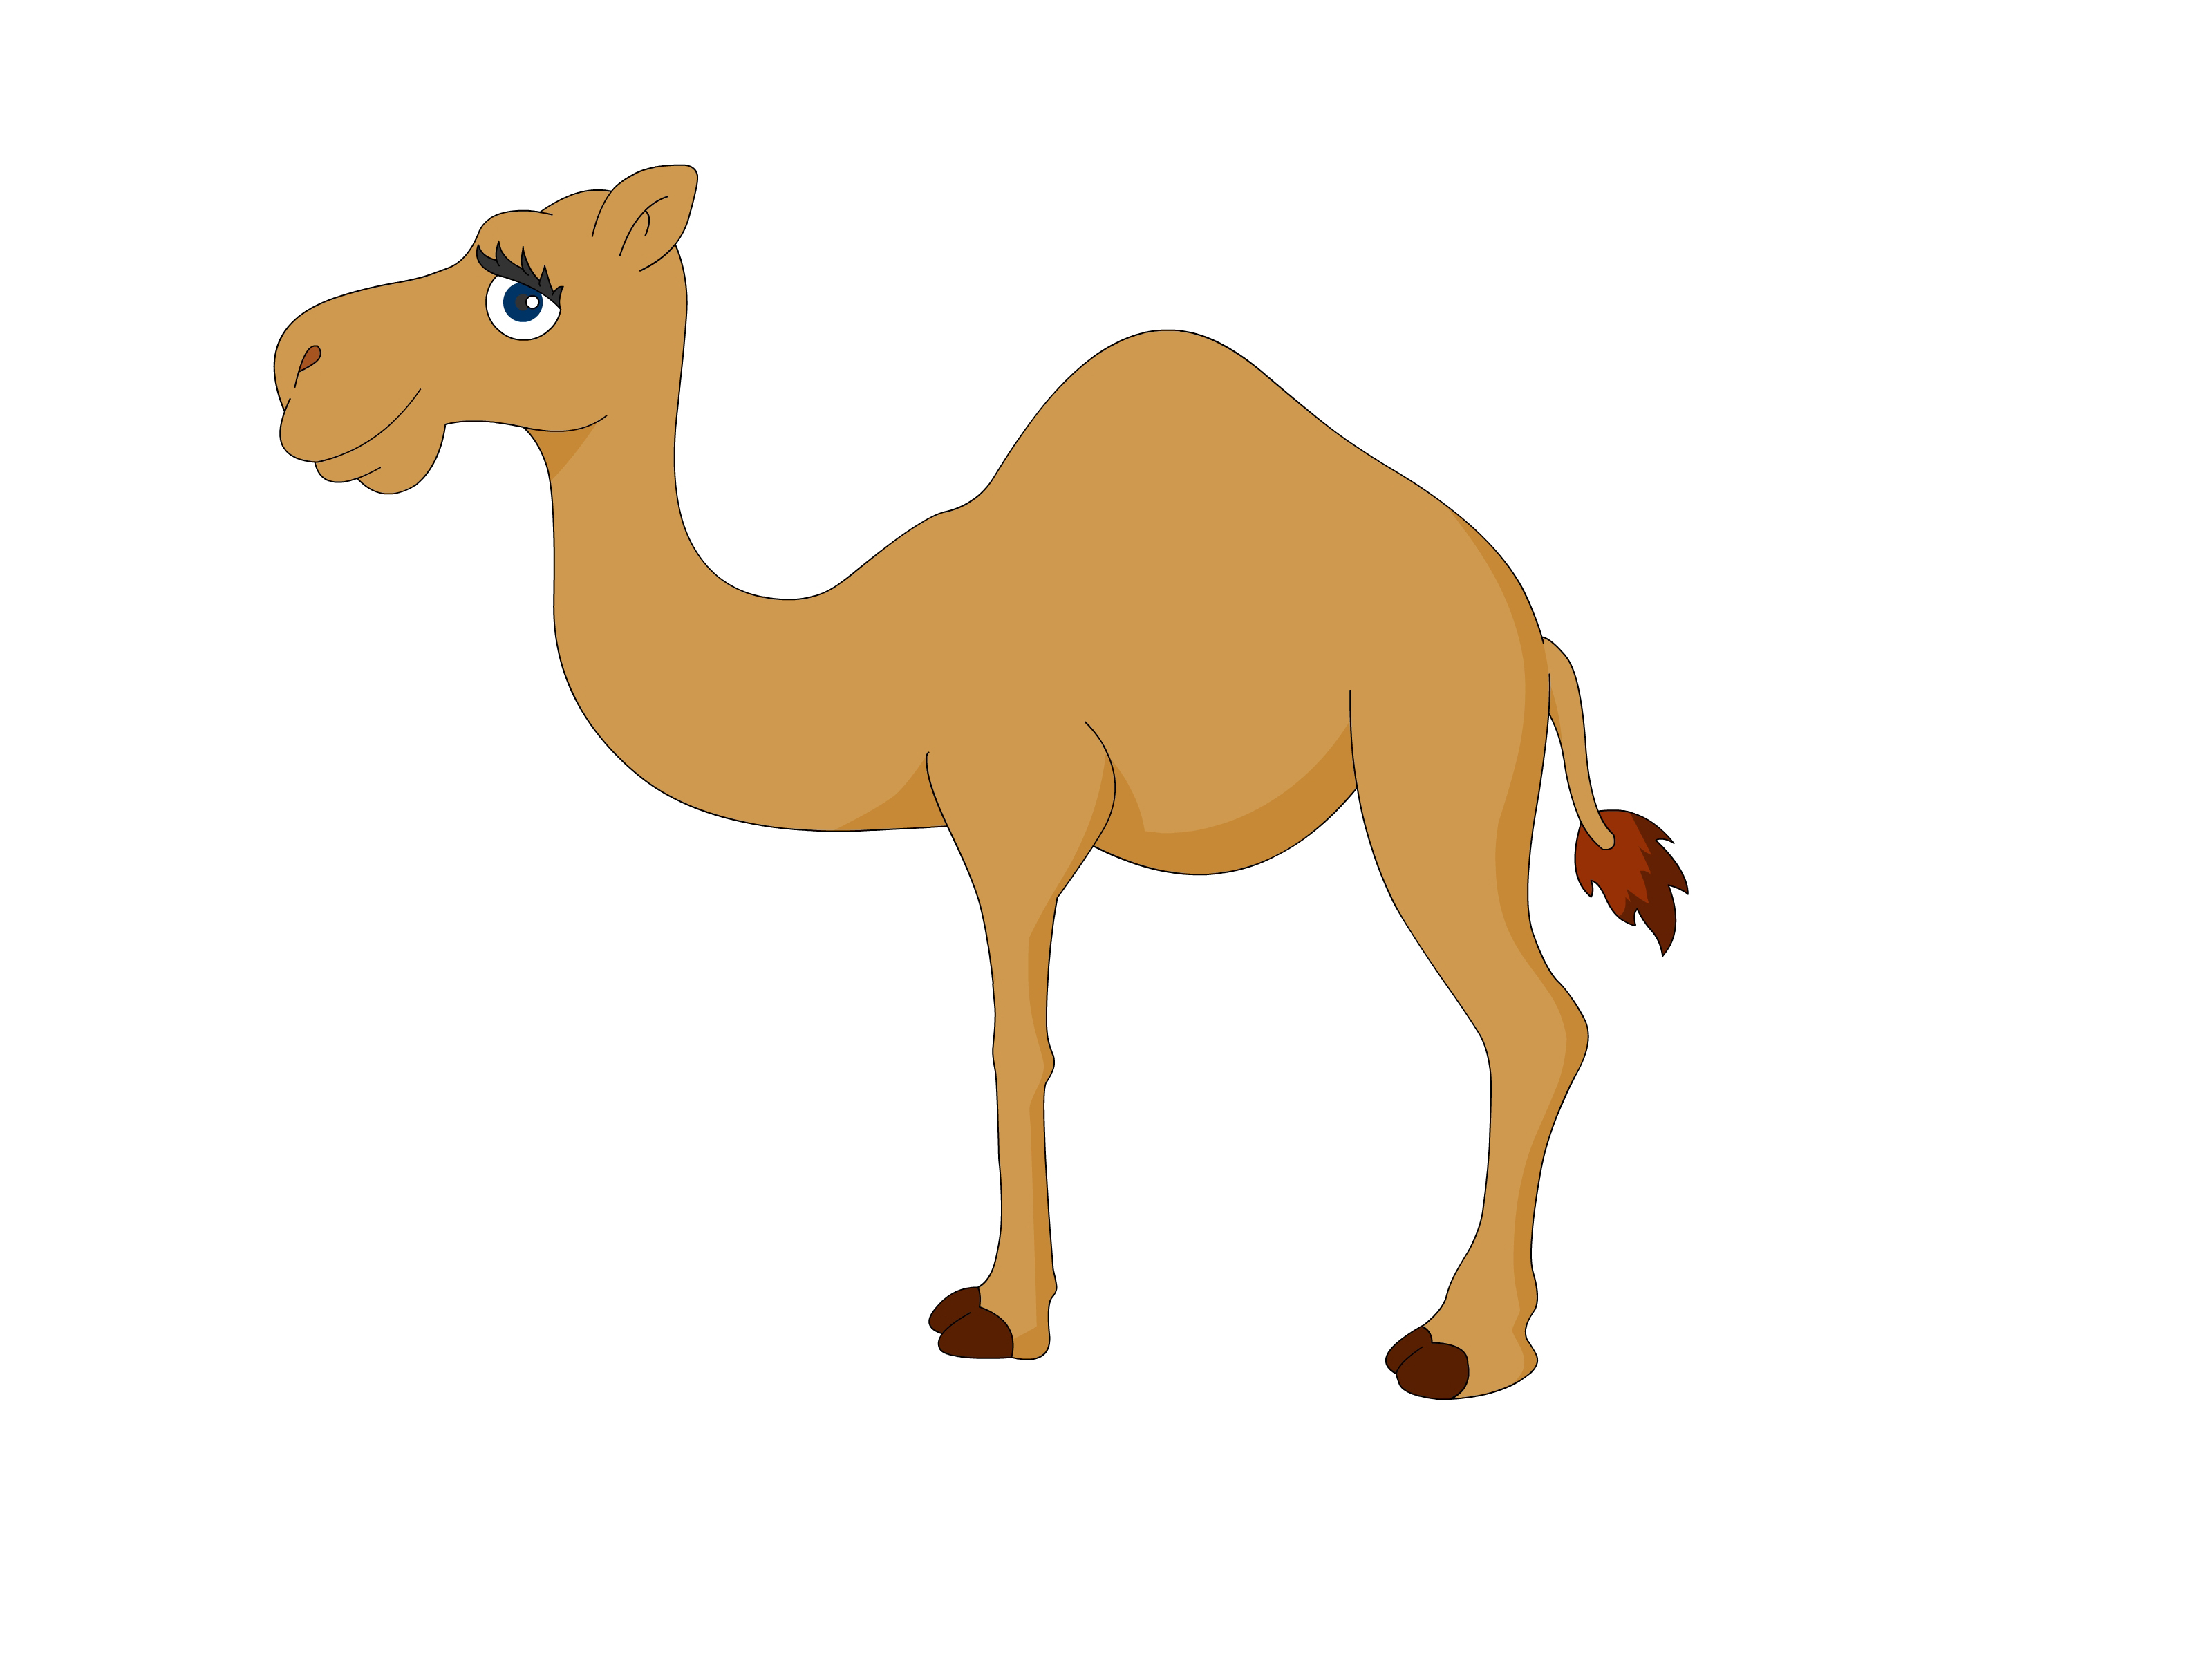 Person riding camel clipart stencil free design download.